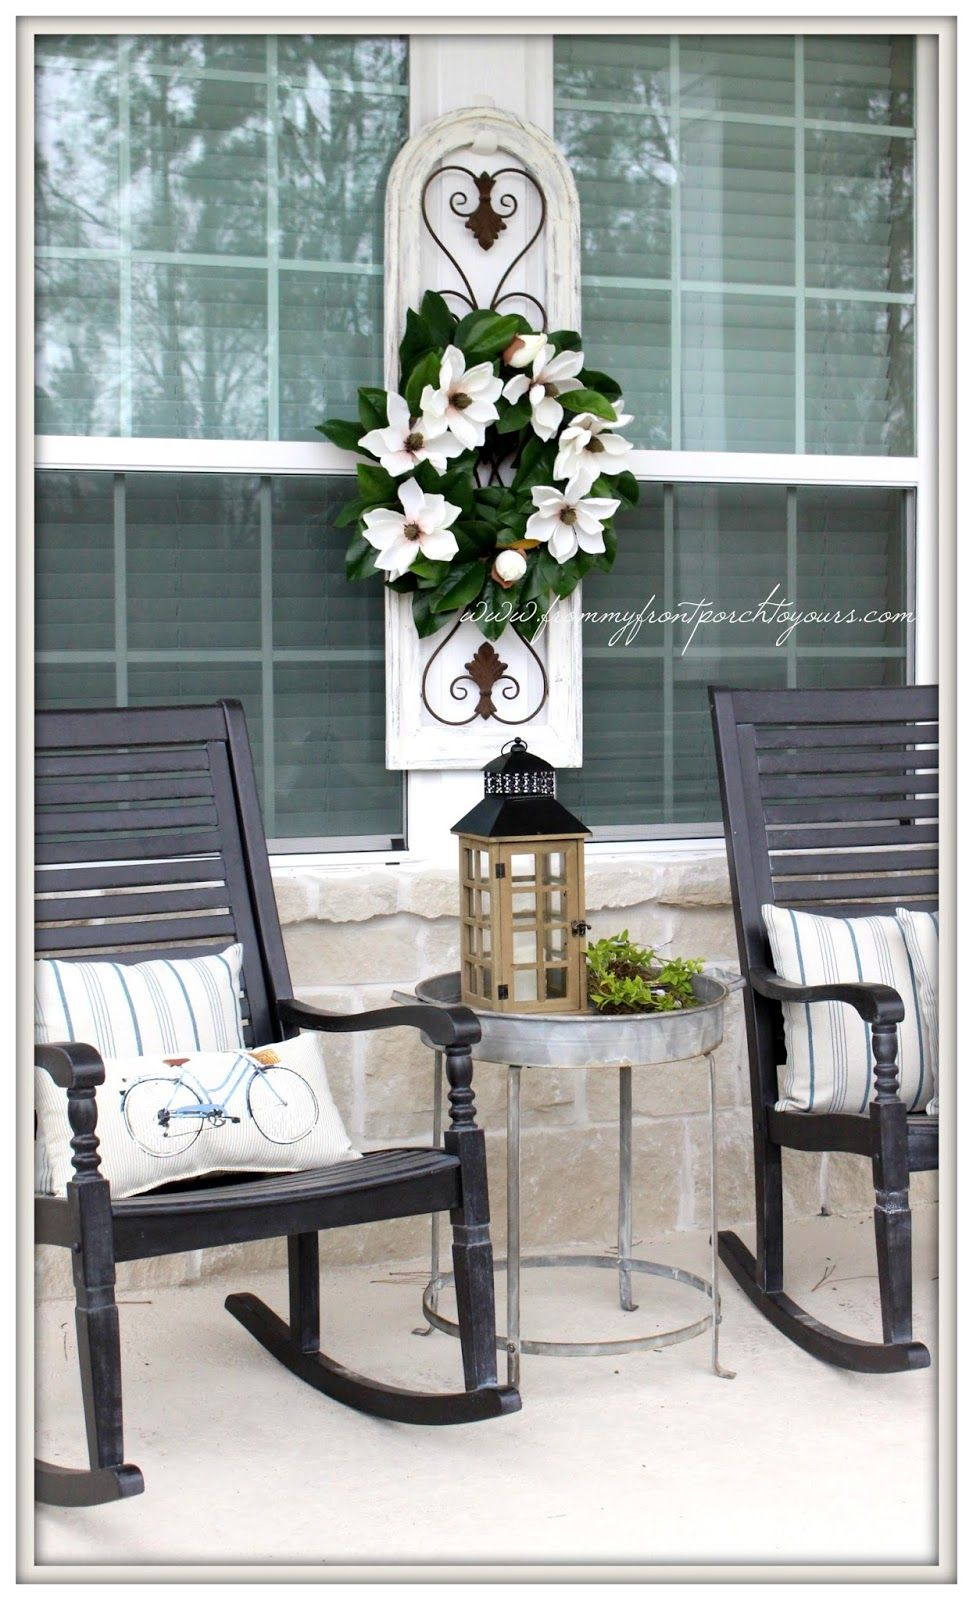 Early Spring Farmhouse Front Porch Front Porch Furniture Porch Wall Decor Diy Front Porch